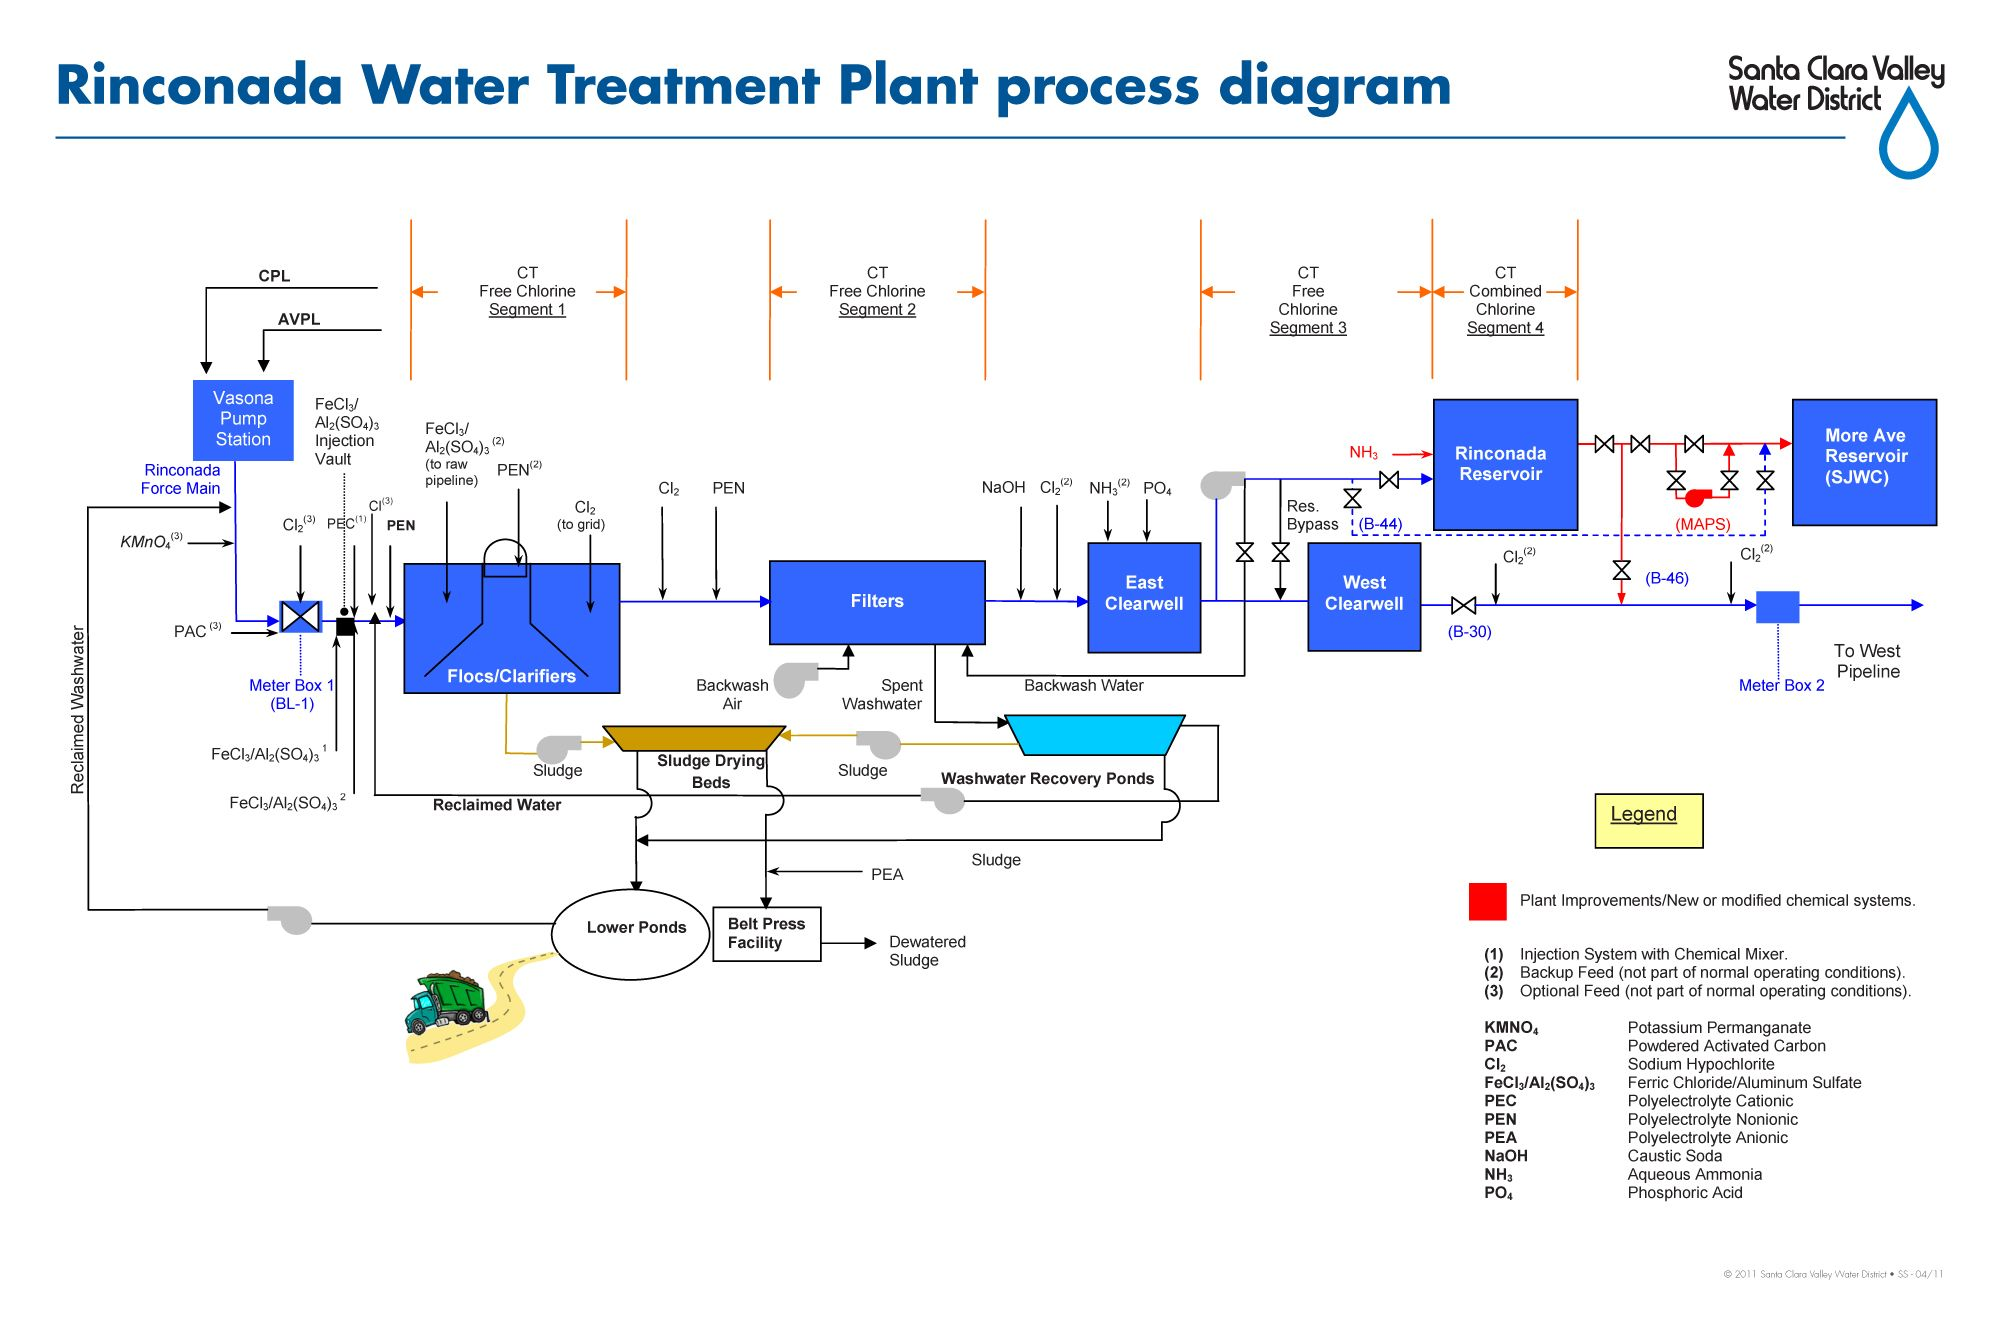 hight resolution of rinconada water treatment plant process diagram water treatment rh pinterest com diagram of distilled water plant diagram of a water leaf plant